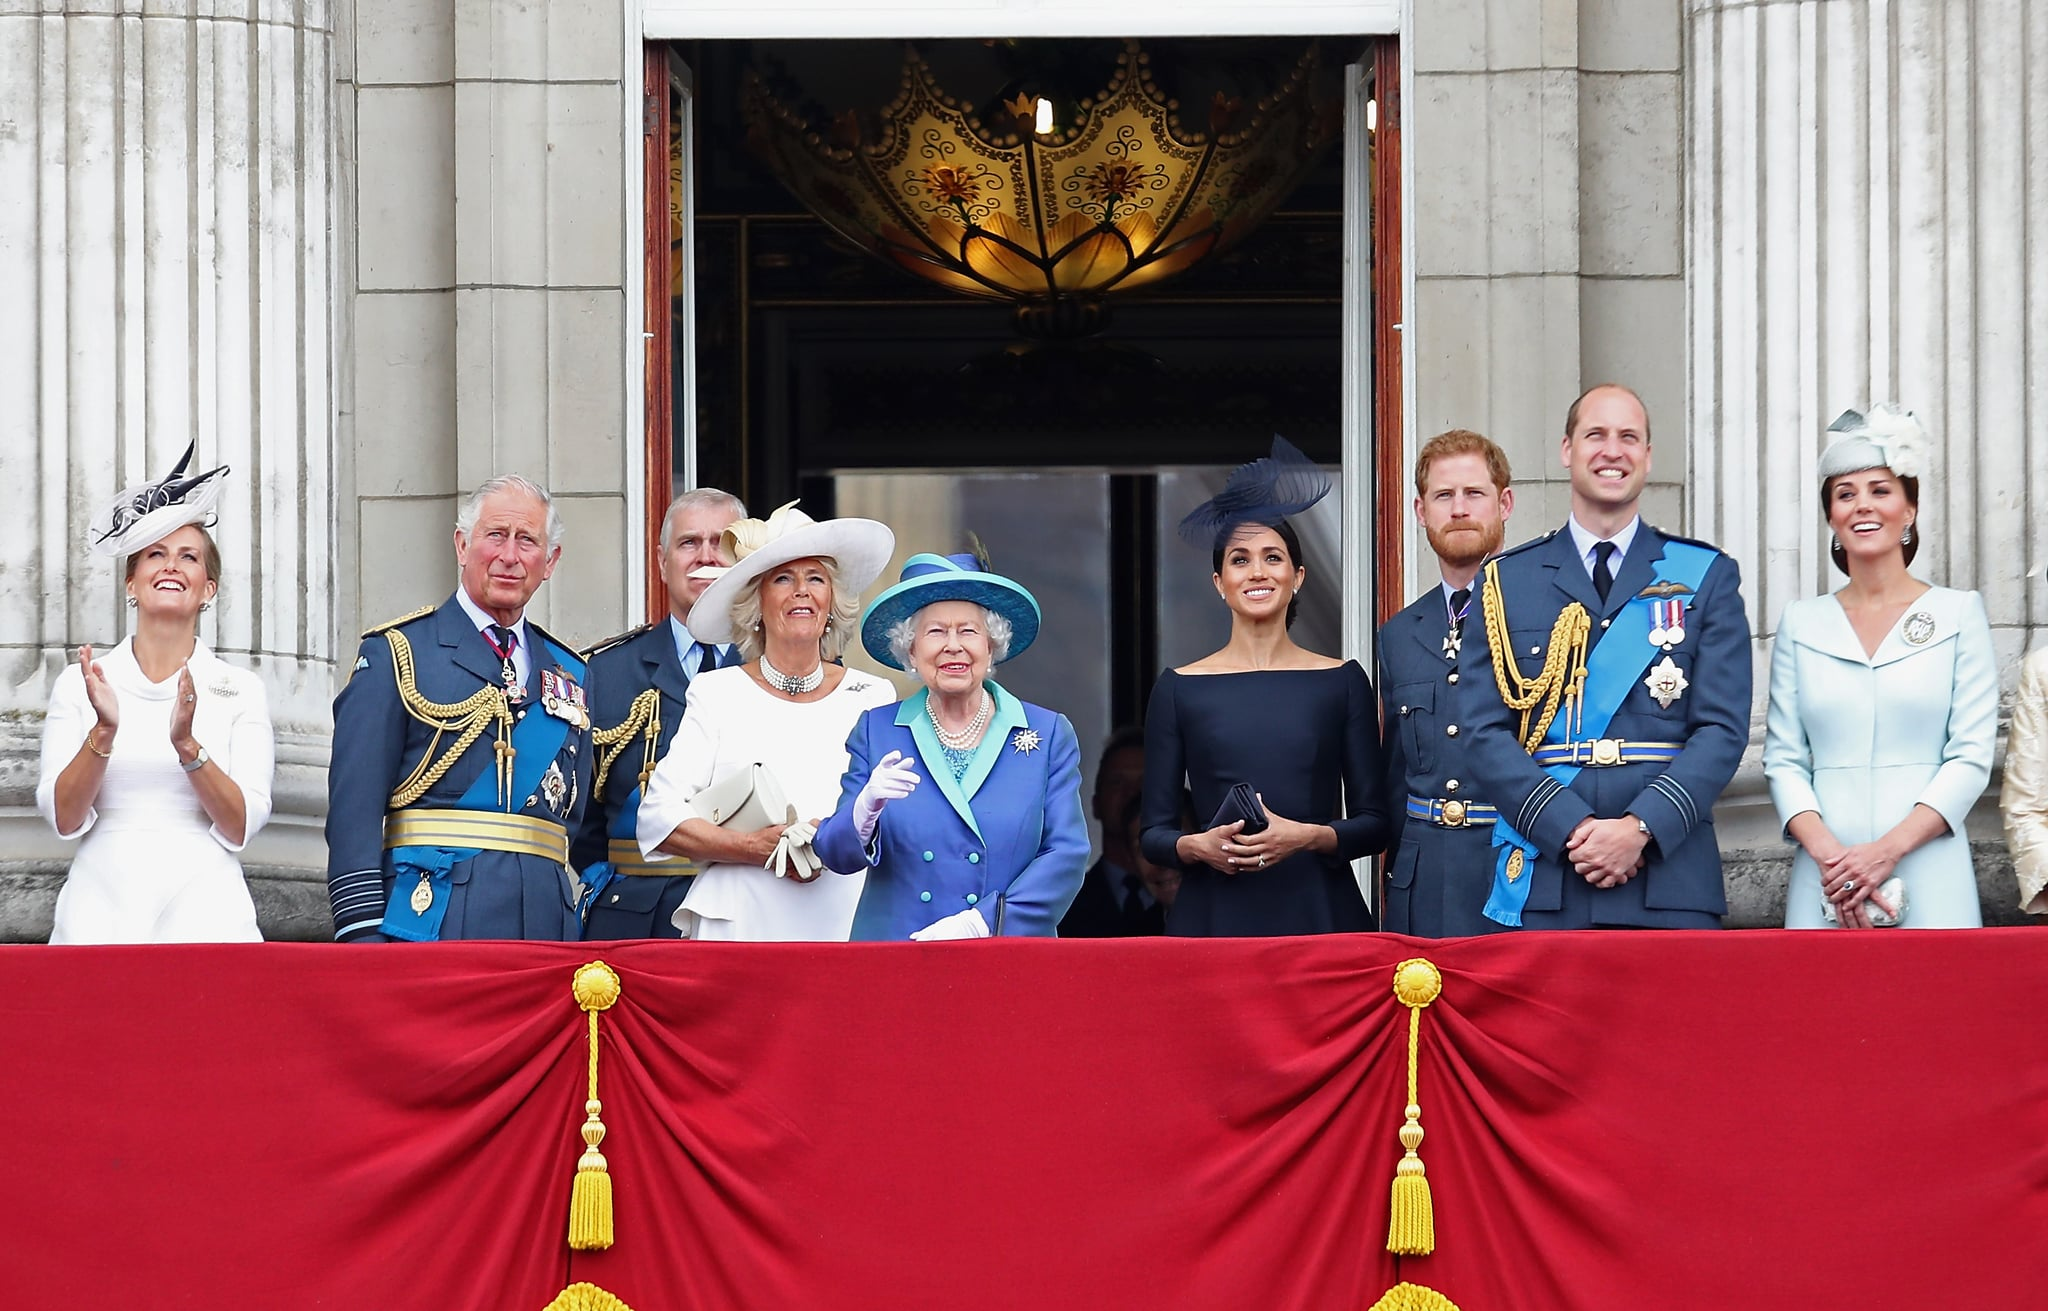 LONDON, ENGLAND - JULY 10:  (L-R) Prince Charles, Prince of Wales, Prince Andrew, Duke of York, Camilla, Duchess of Cornwall, Queen Elizabeth II, Meghan, Duchess of Sussex, Prince Harry, Duke of Sussex, Prince William, Duke of Cambridge and Catherine, Duchess of Cambridge watch the RAF flypast on the balcony of Buckingham Palace, as members of the Royal Family attend events to mark the centenary of the RAF on July 10, 2018 in London, England.  (Photo by Chris Jackson/Getty Images)